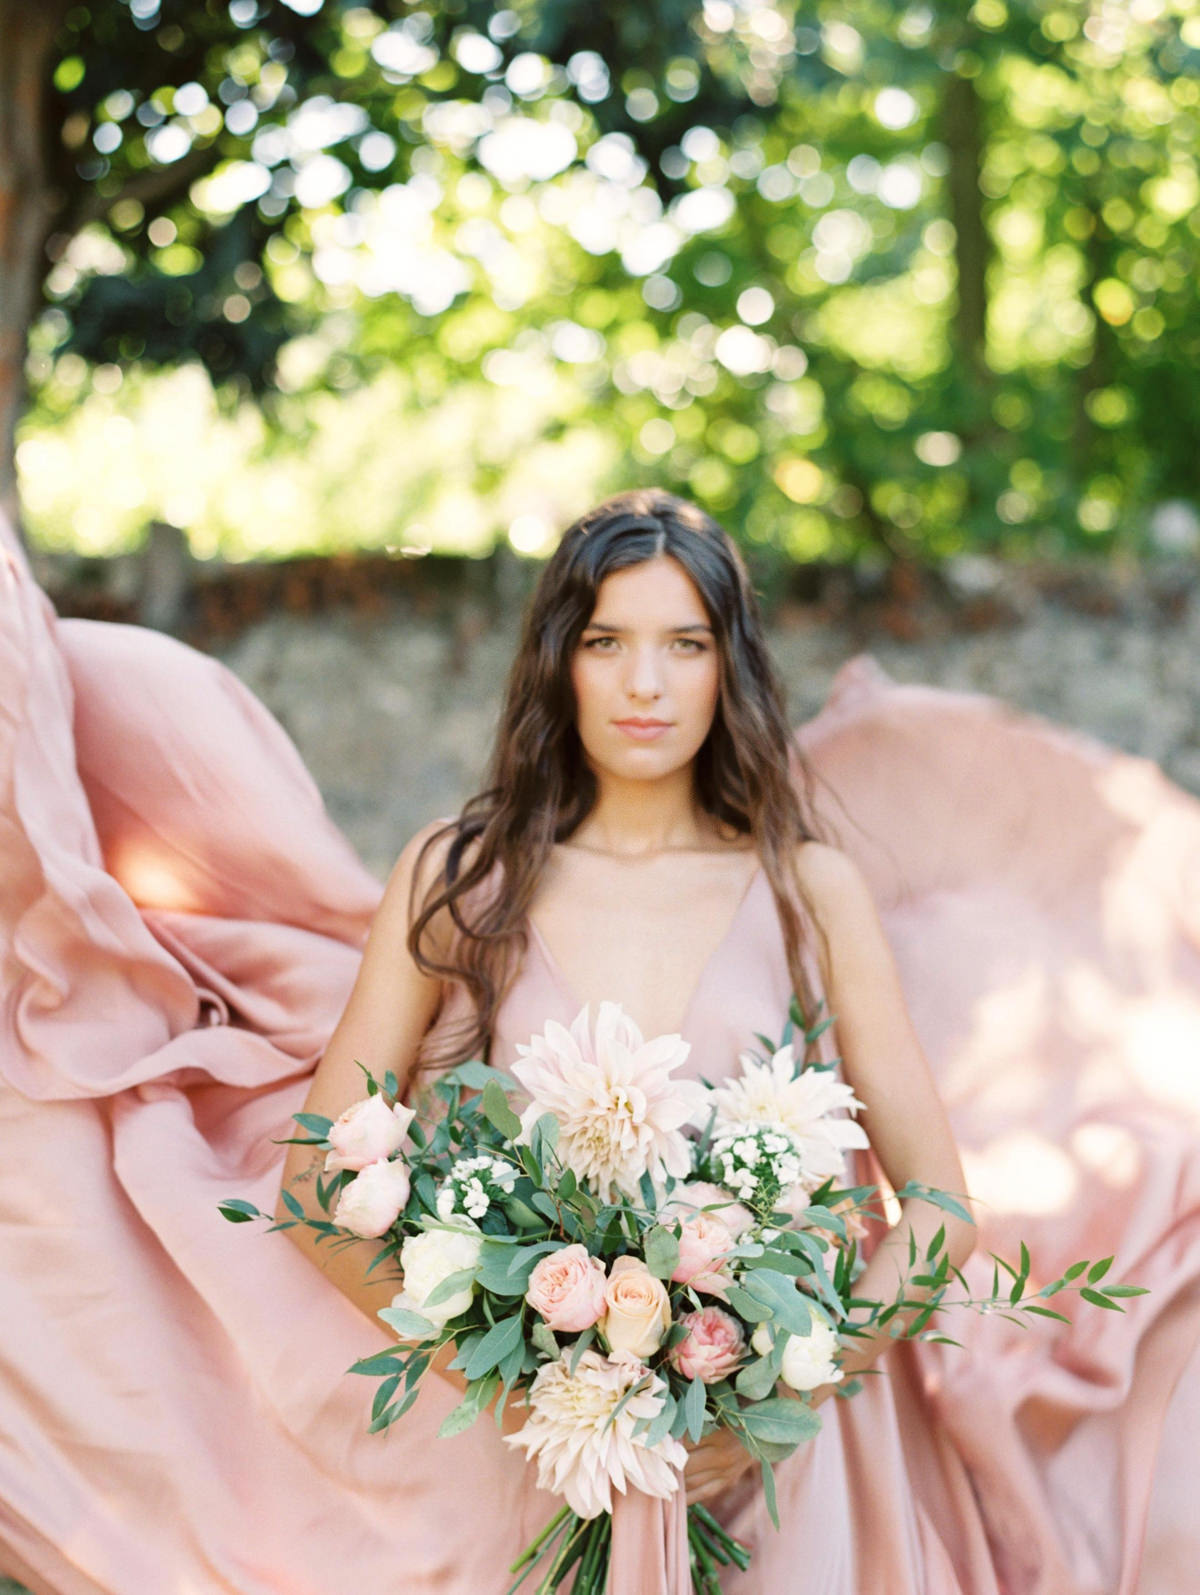 European Wedding Inspiration Garden wedding photo by Matoli Keely Photography